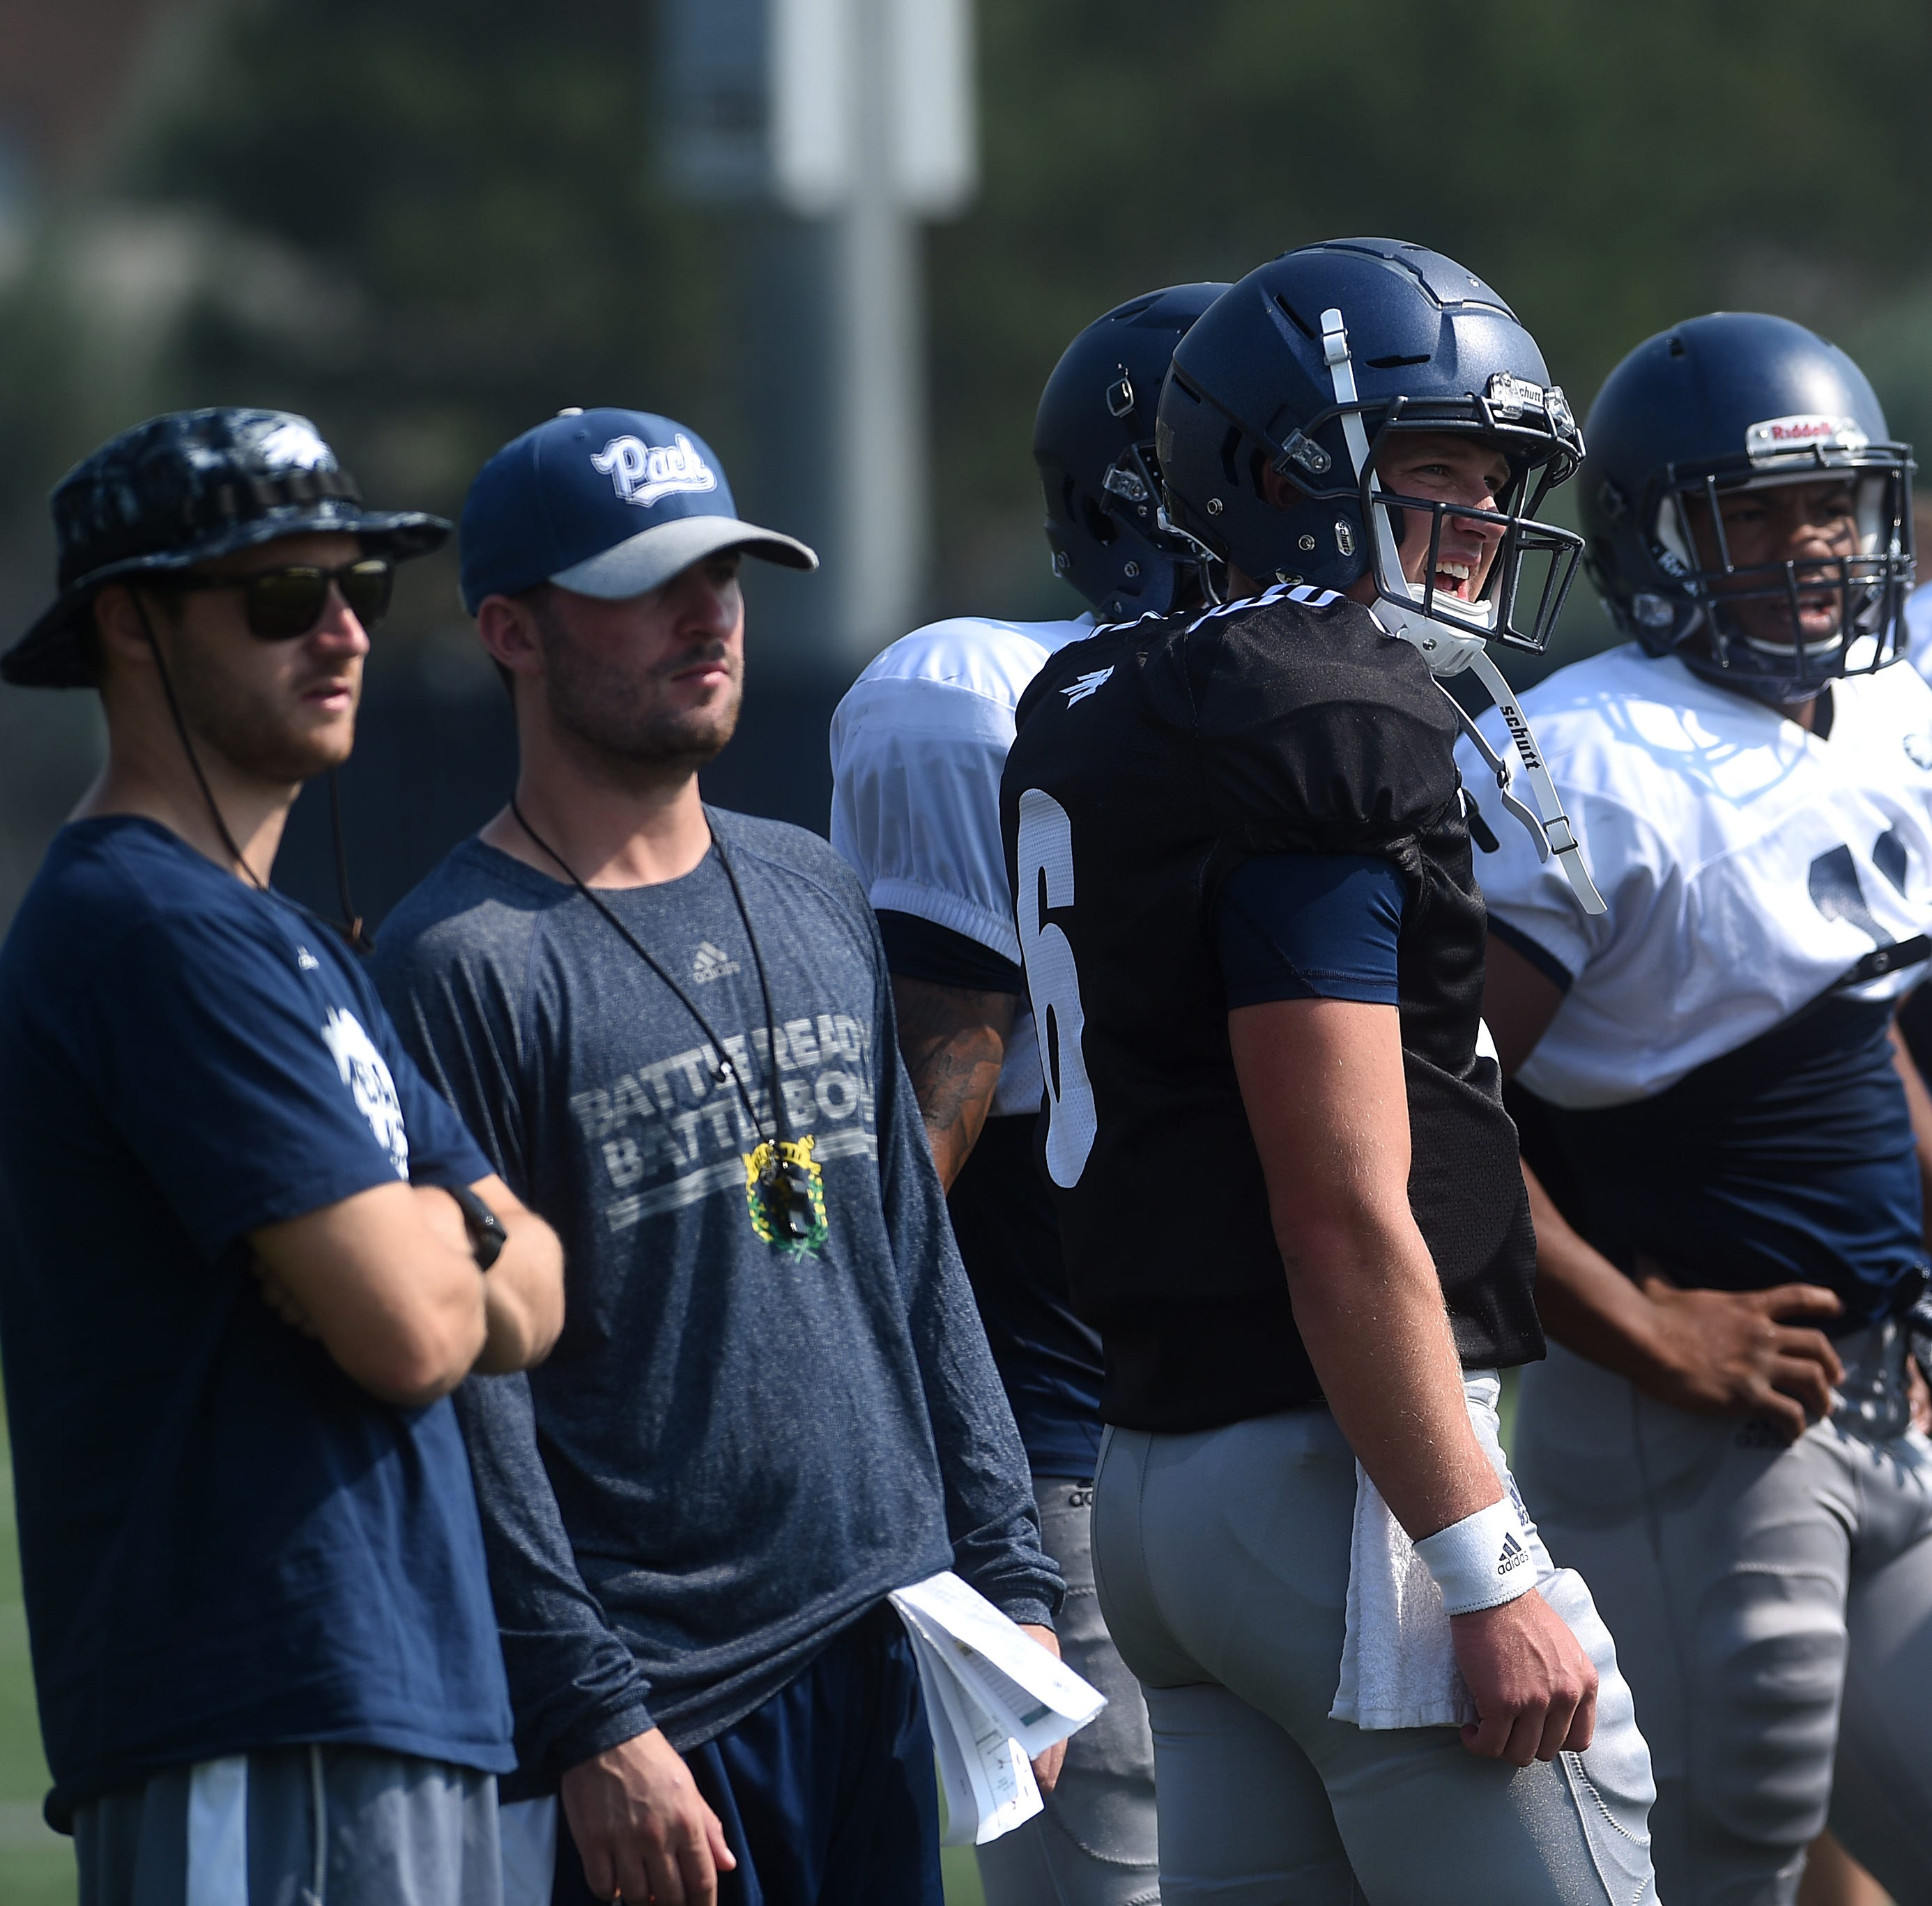 Saturday scrimmage brings 'separation day' for Wolf Pack's newcomers